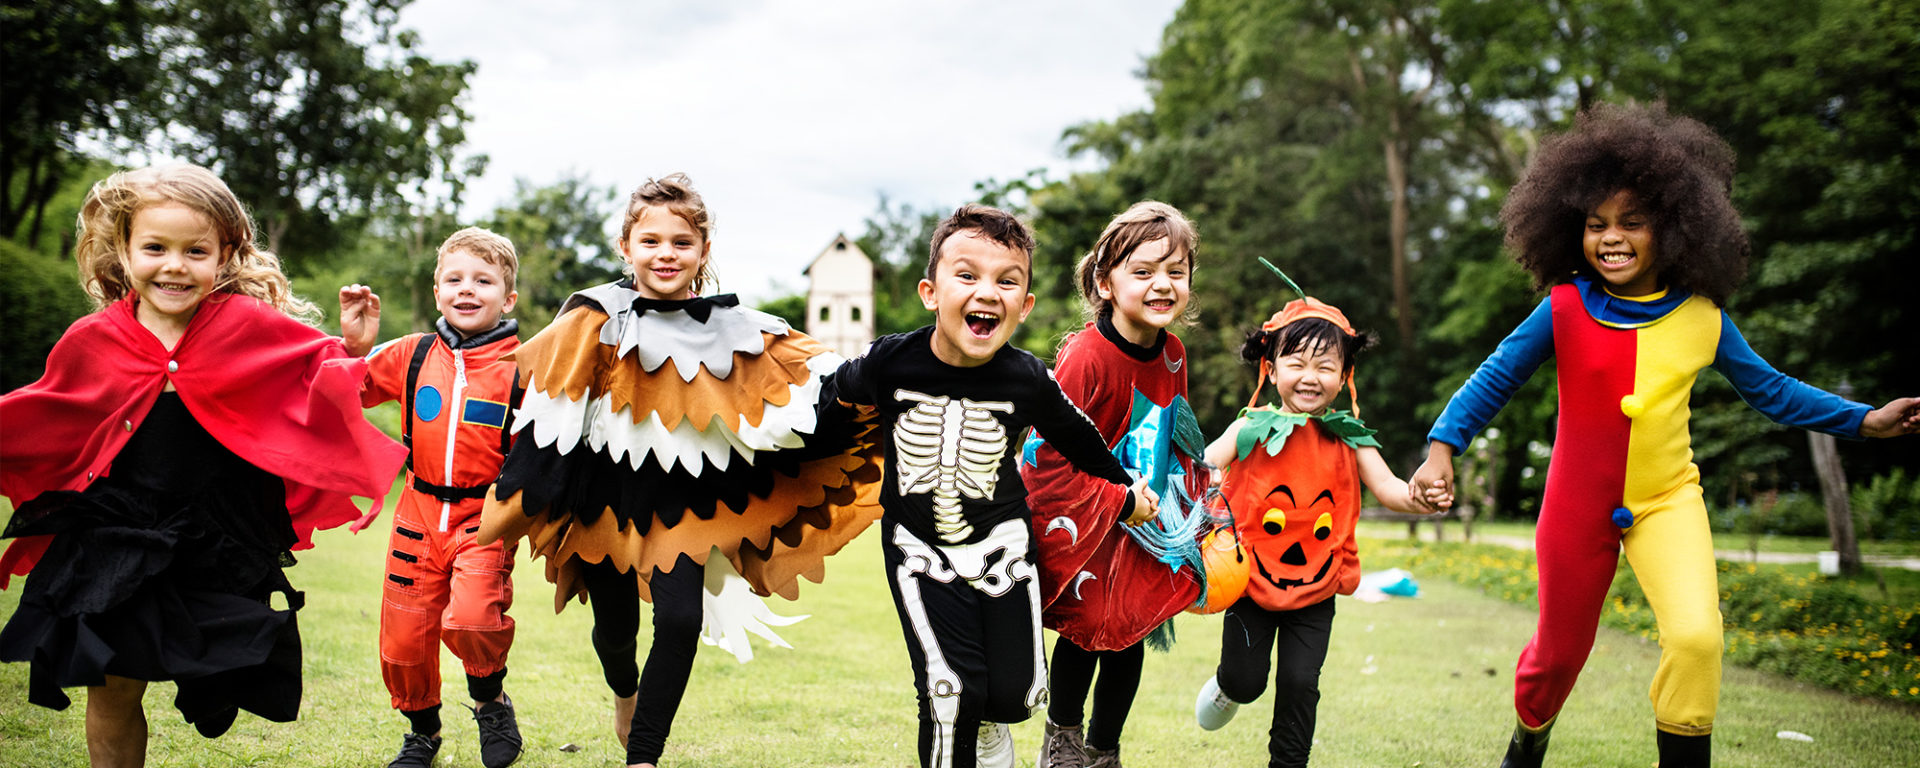 9 halloween activities for kids (from spooky food to glitter slime)